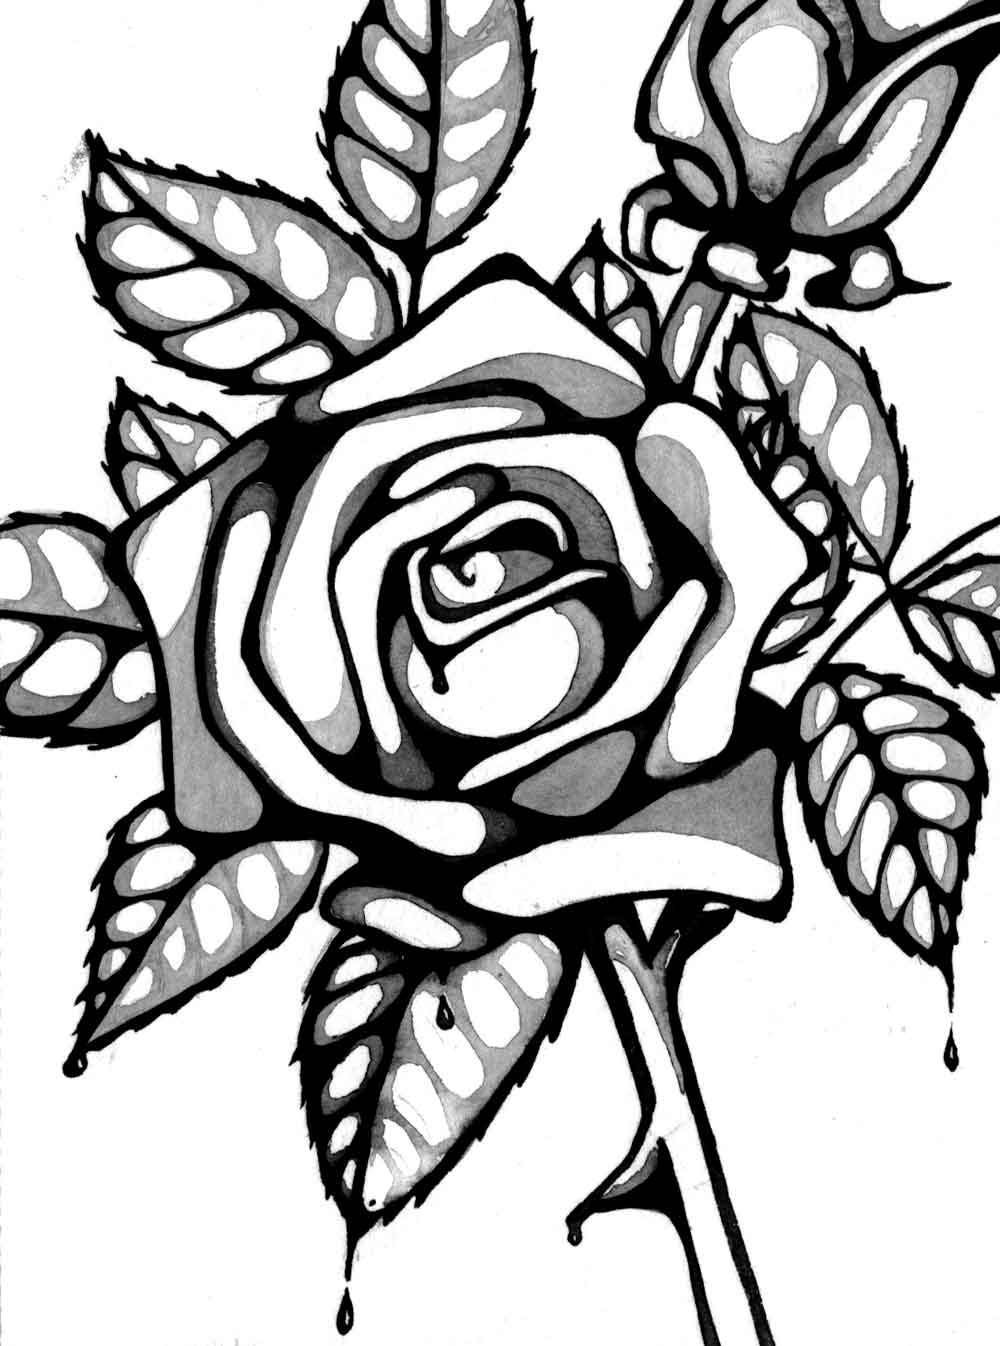 rose flower coloring pictures rose coloring pages download and print rose coloring pages coloring rose pictures flower